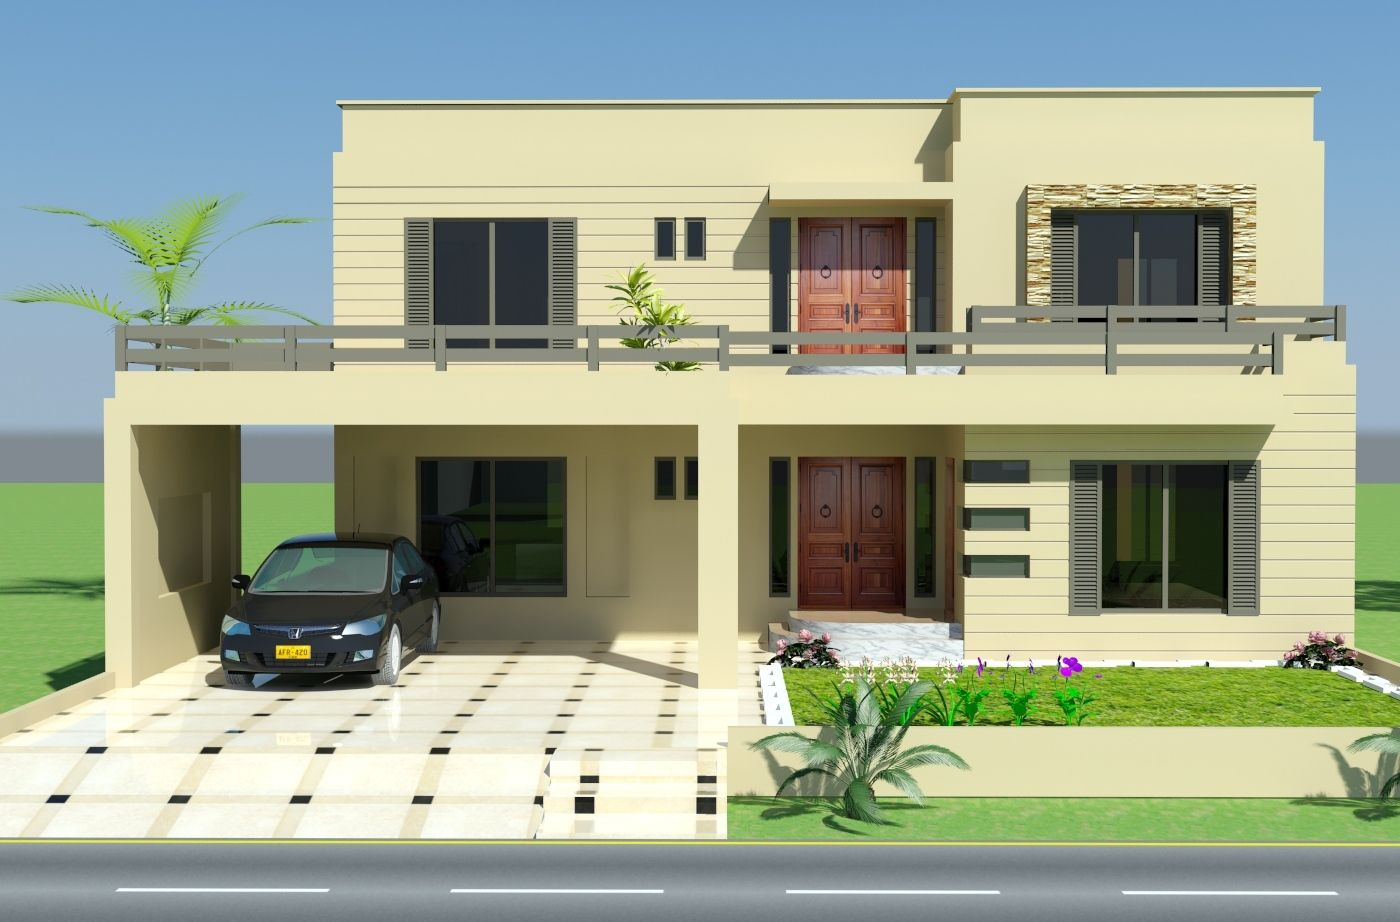 Exterior house design front elevation mi futura casa for Home outer design images